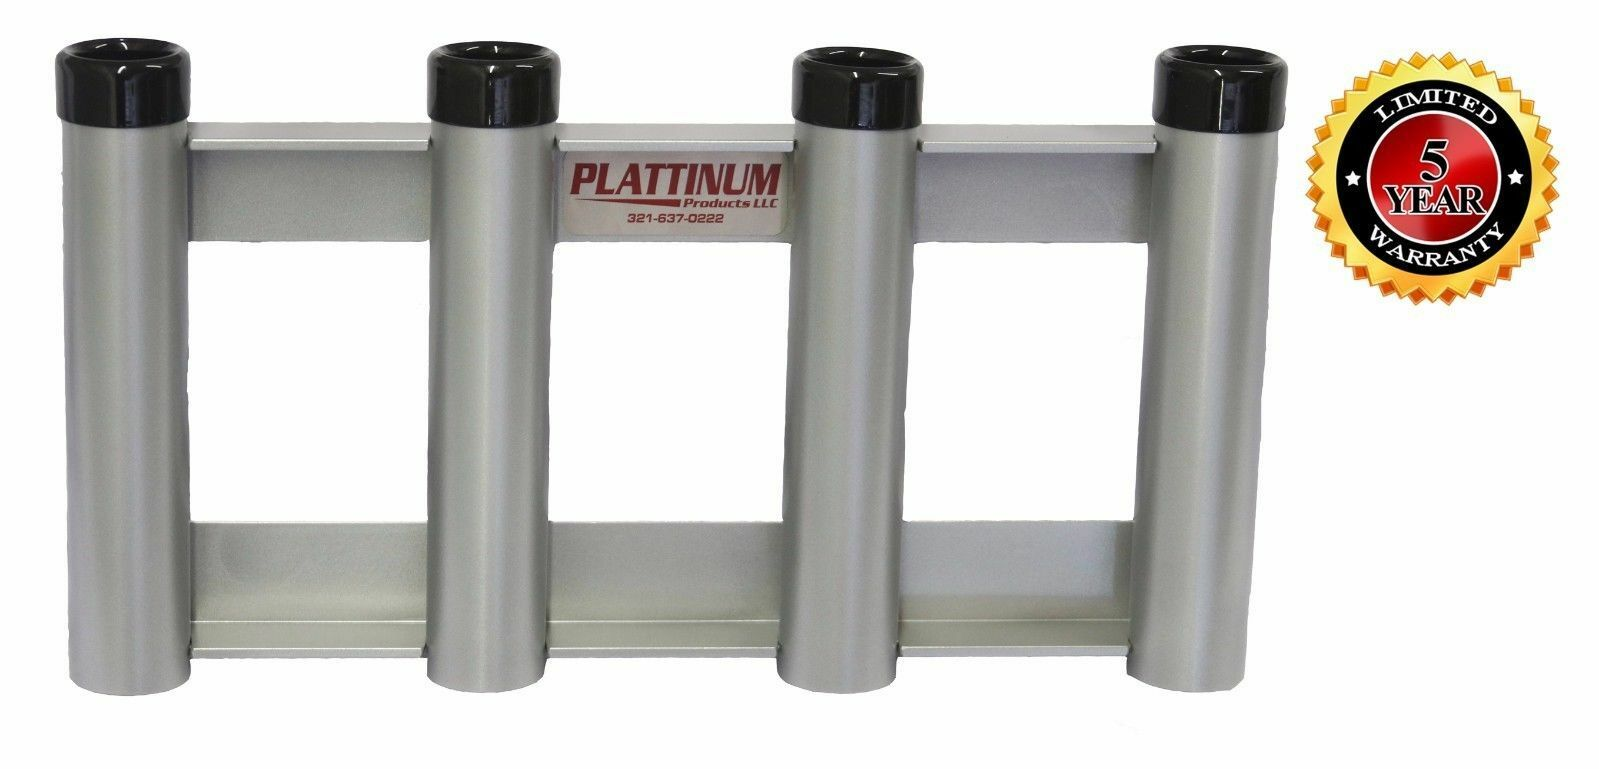 Plattinum Fishing Rod  Holder All Aluminum No Rust Holds 4 Rods Flat Flush Mount  be in great demand